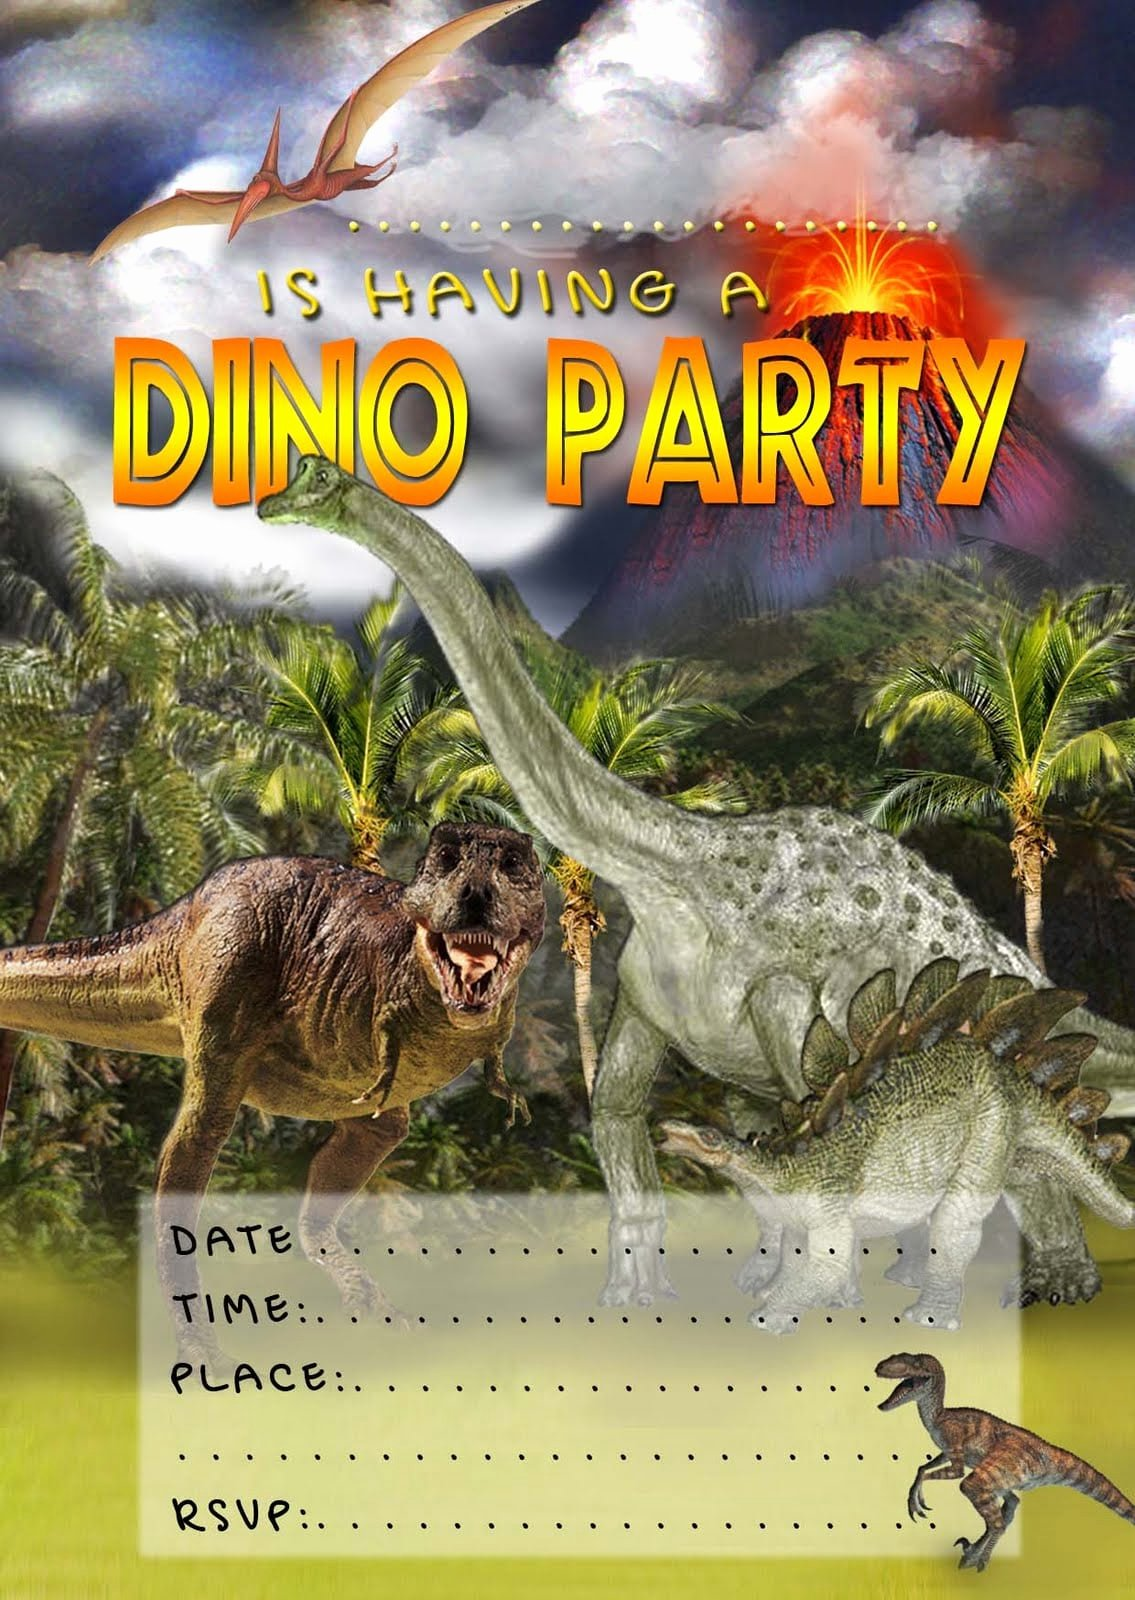 Dinosaur Birthday Invitation Template Elegant Free Printable Dinosaur Birthday Invitation